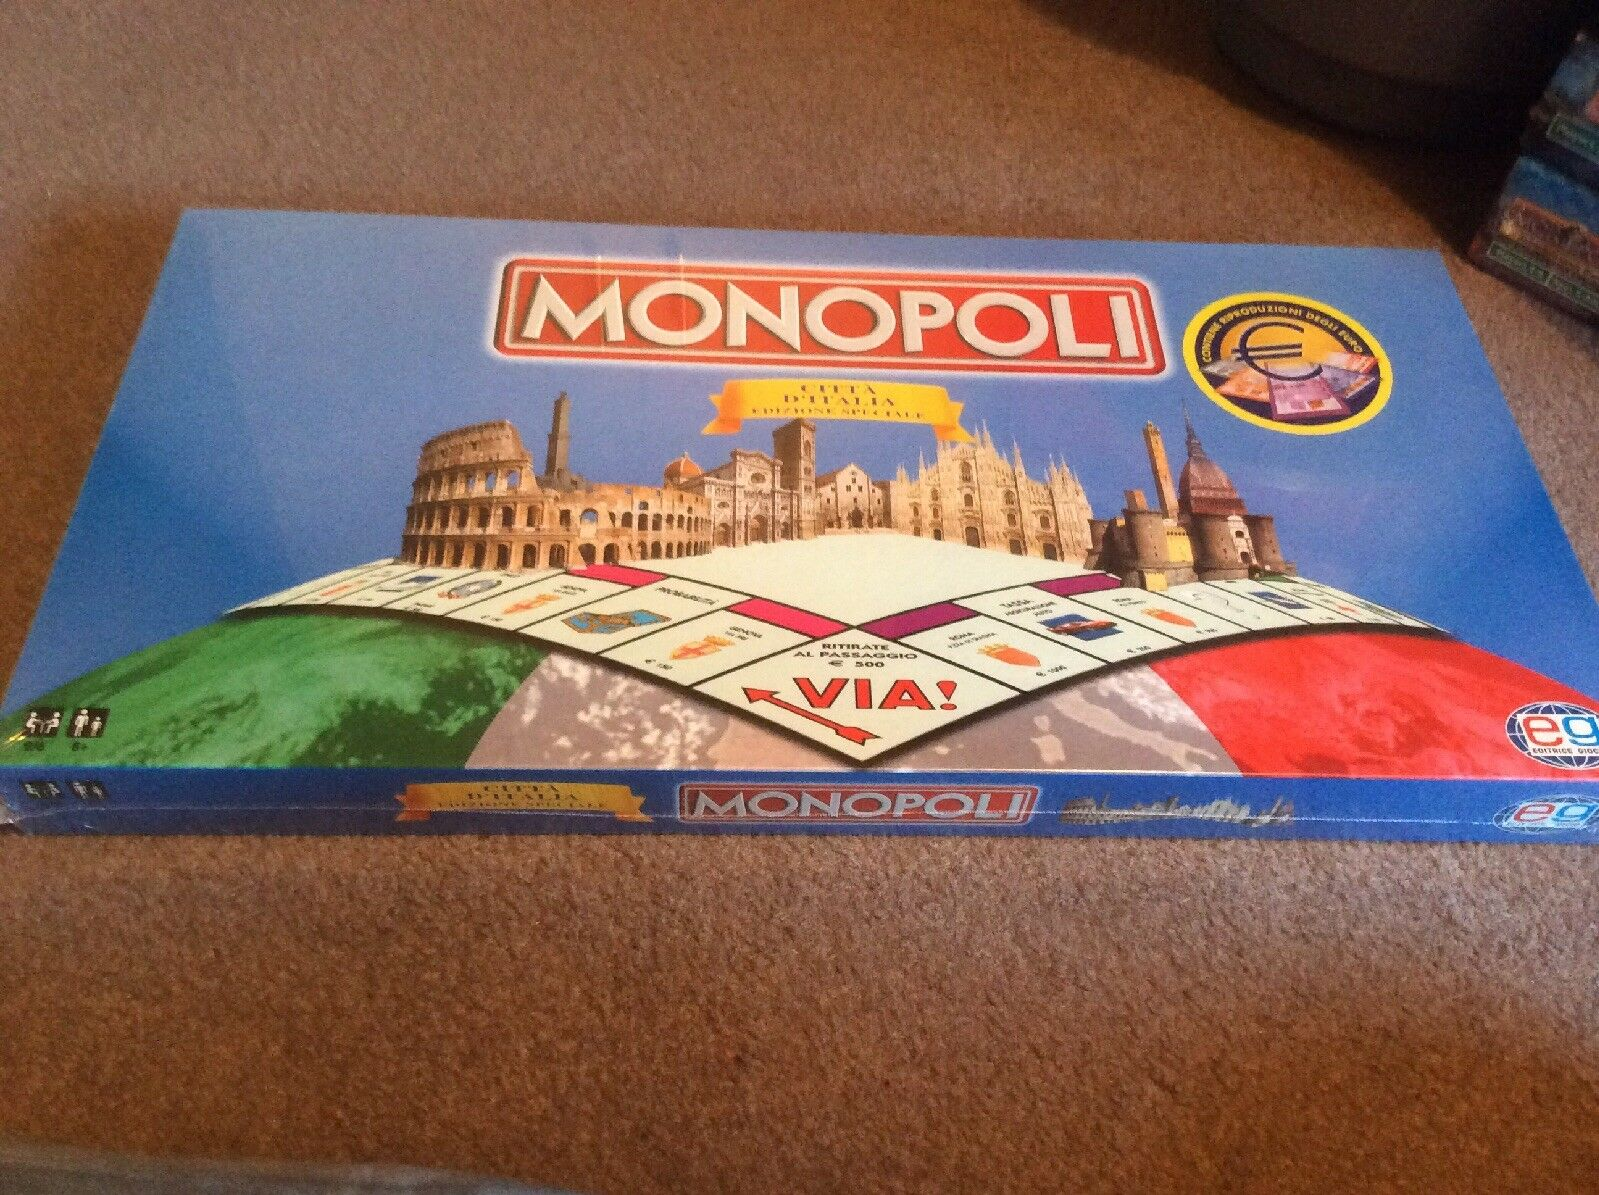 Monopoli - Italian City Special Edition Monopoly Game Game Game New And Sealed 0628e2